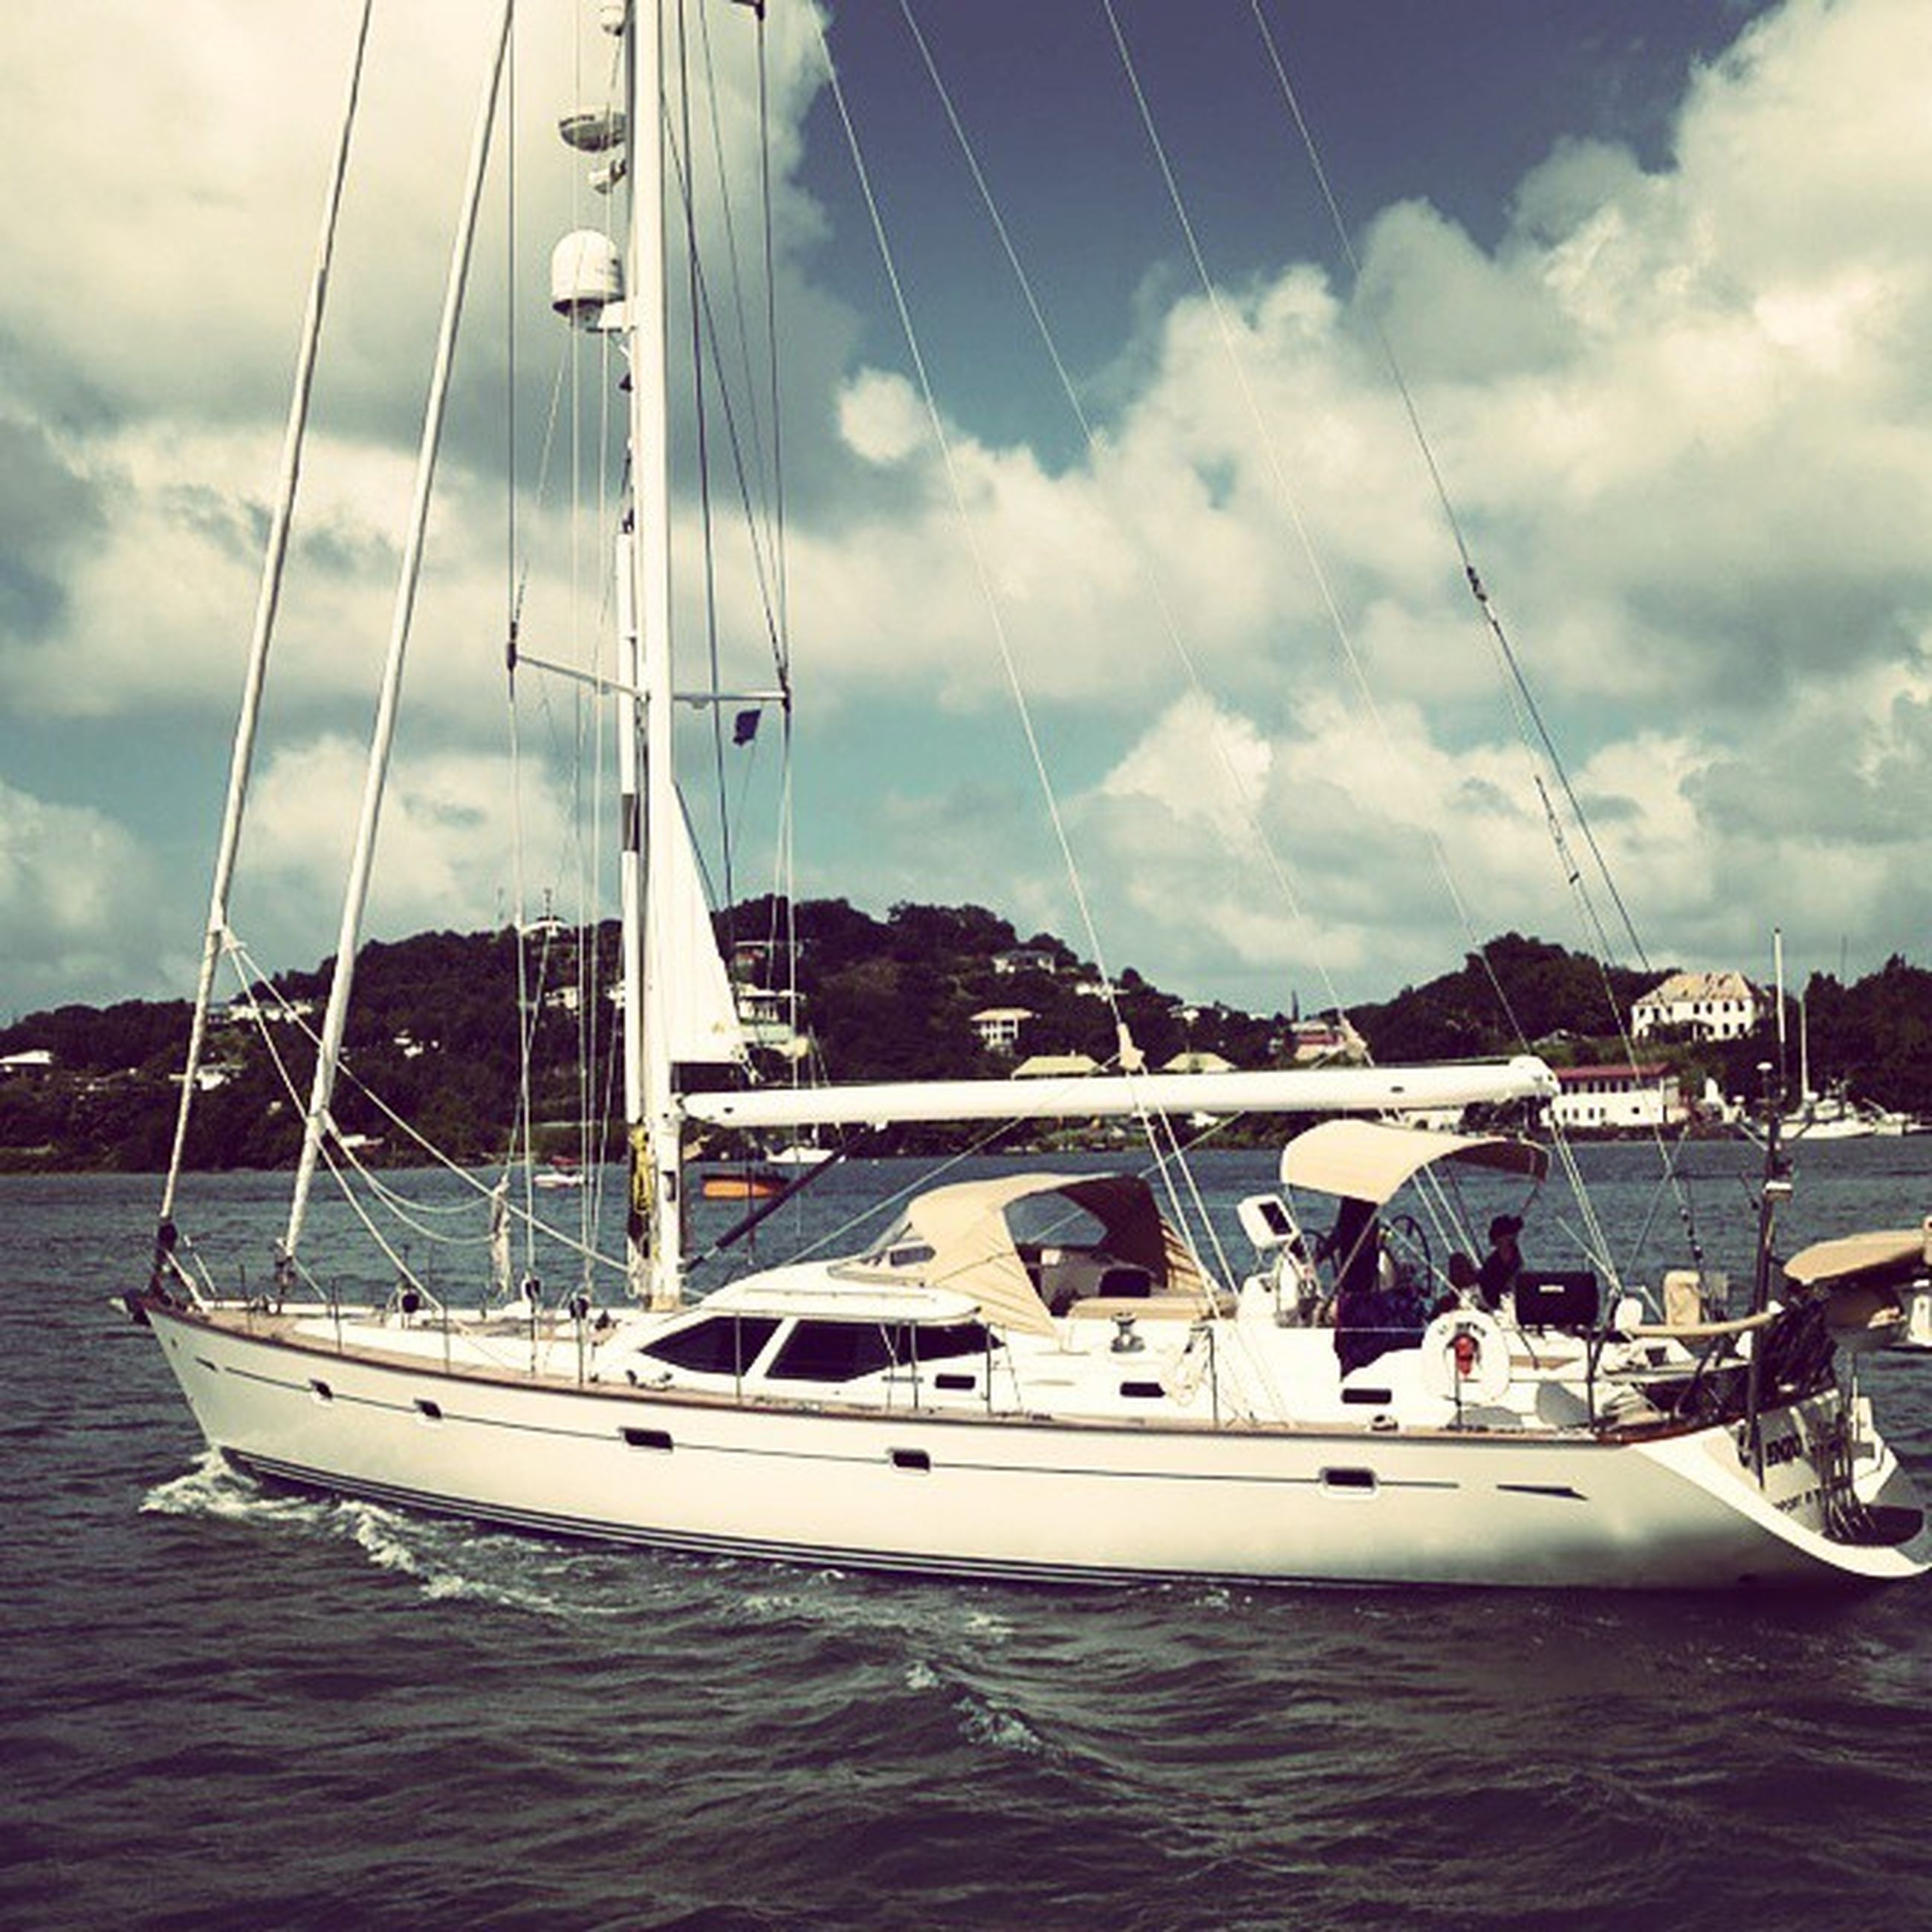 nautical vessel, boat, transportation, water, sky, mode of transport, cloud - sky, moored, sea, cloudy, sailboat, cloud, waterfront, mast, travel, mountain, harbor, day, nature, sailing